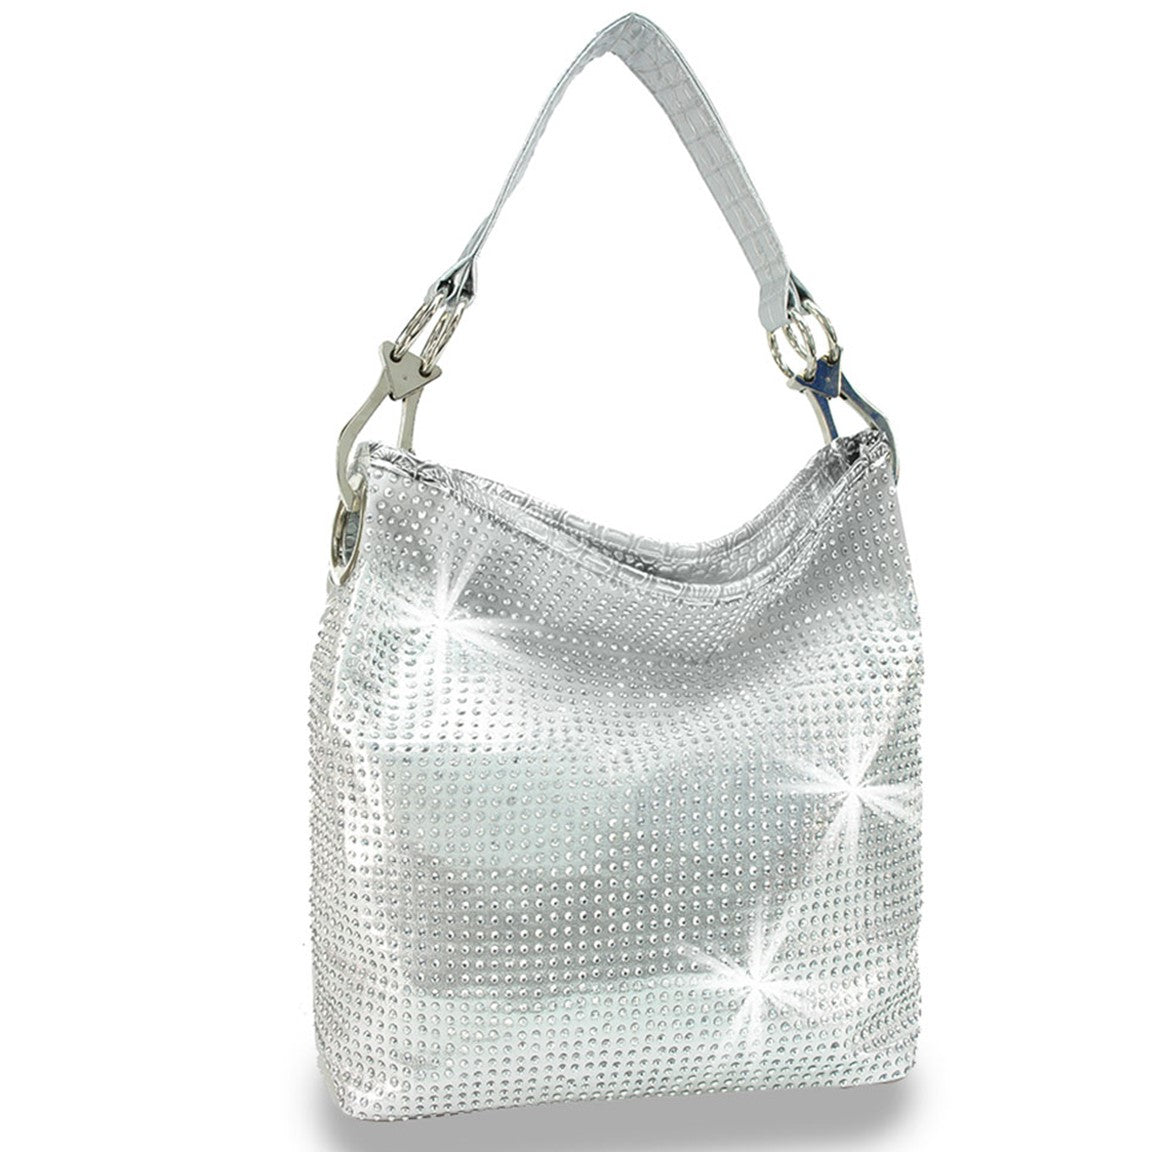 VSB Handbags Hobo Handbag with Studs